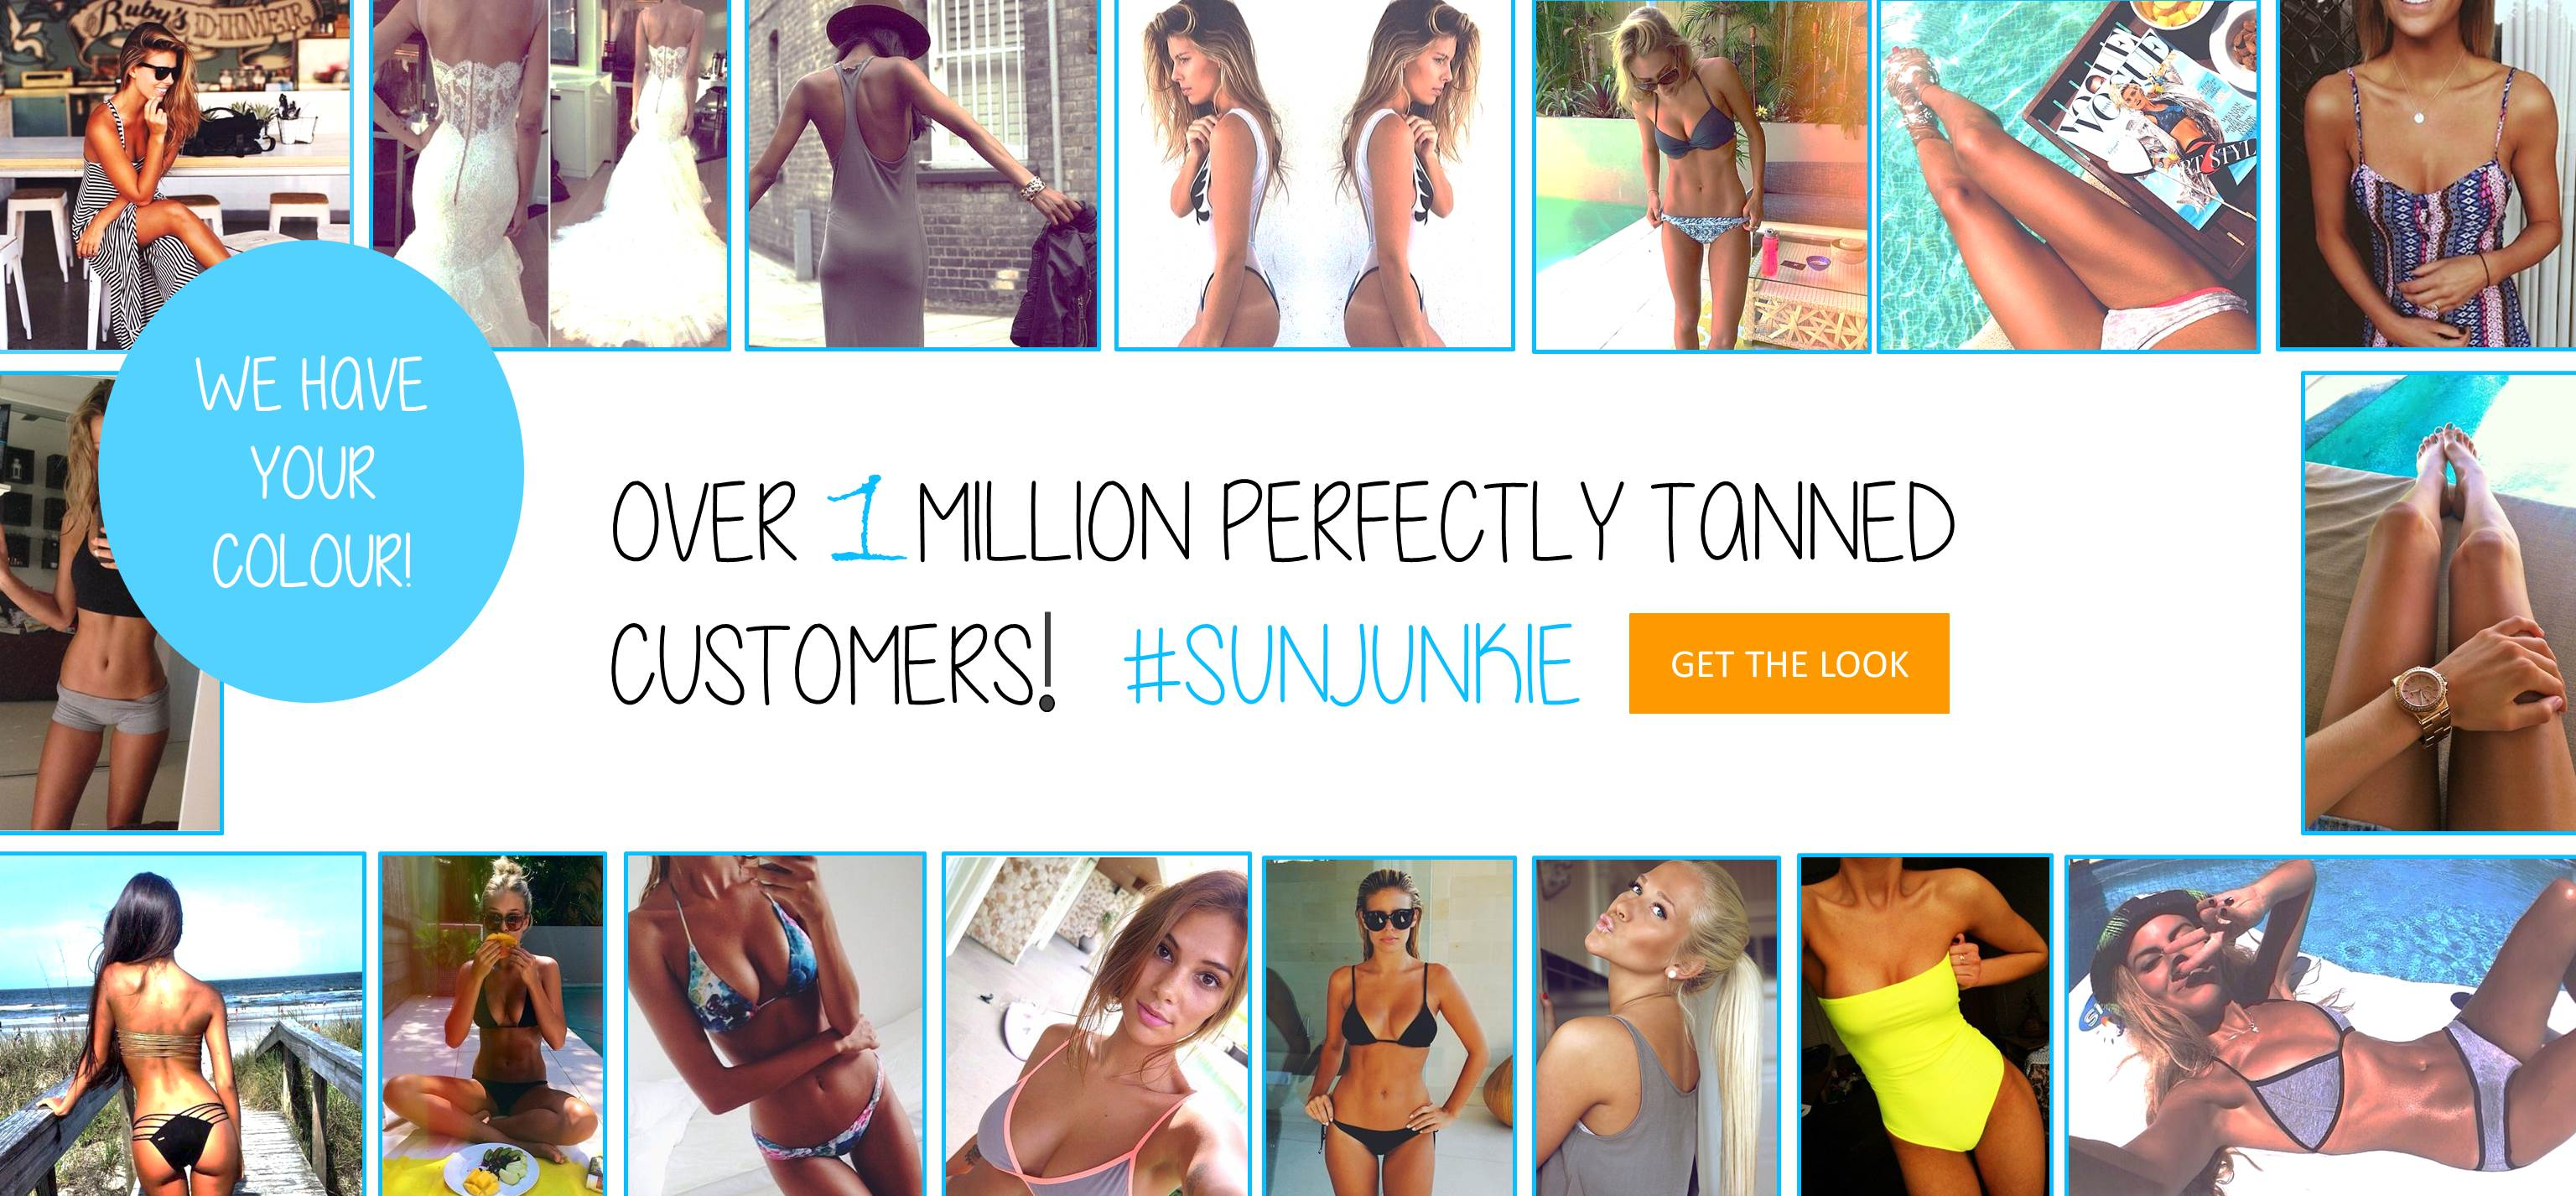 Sunjunkie spray tan solution | spray tanning | reviews | pictures